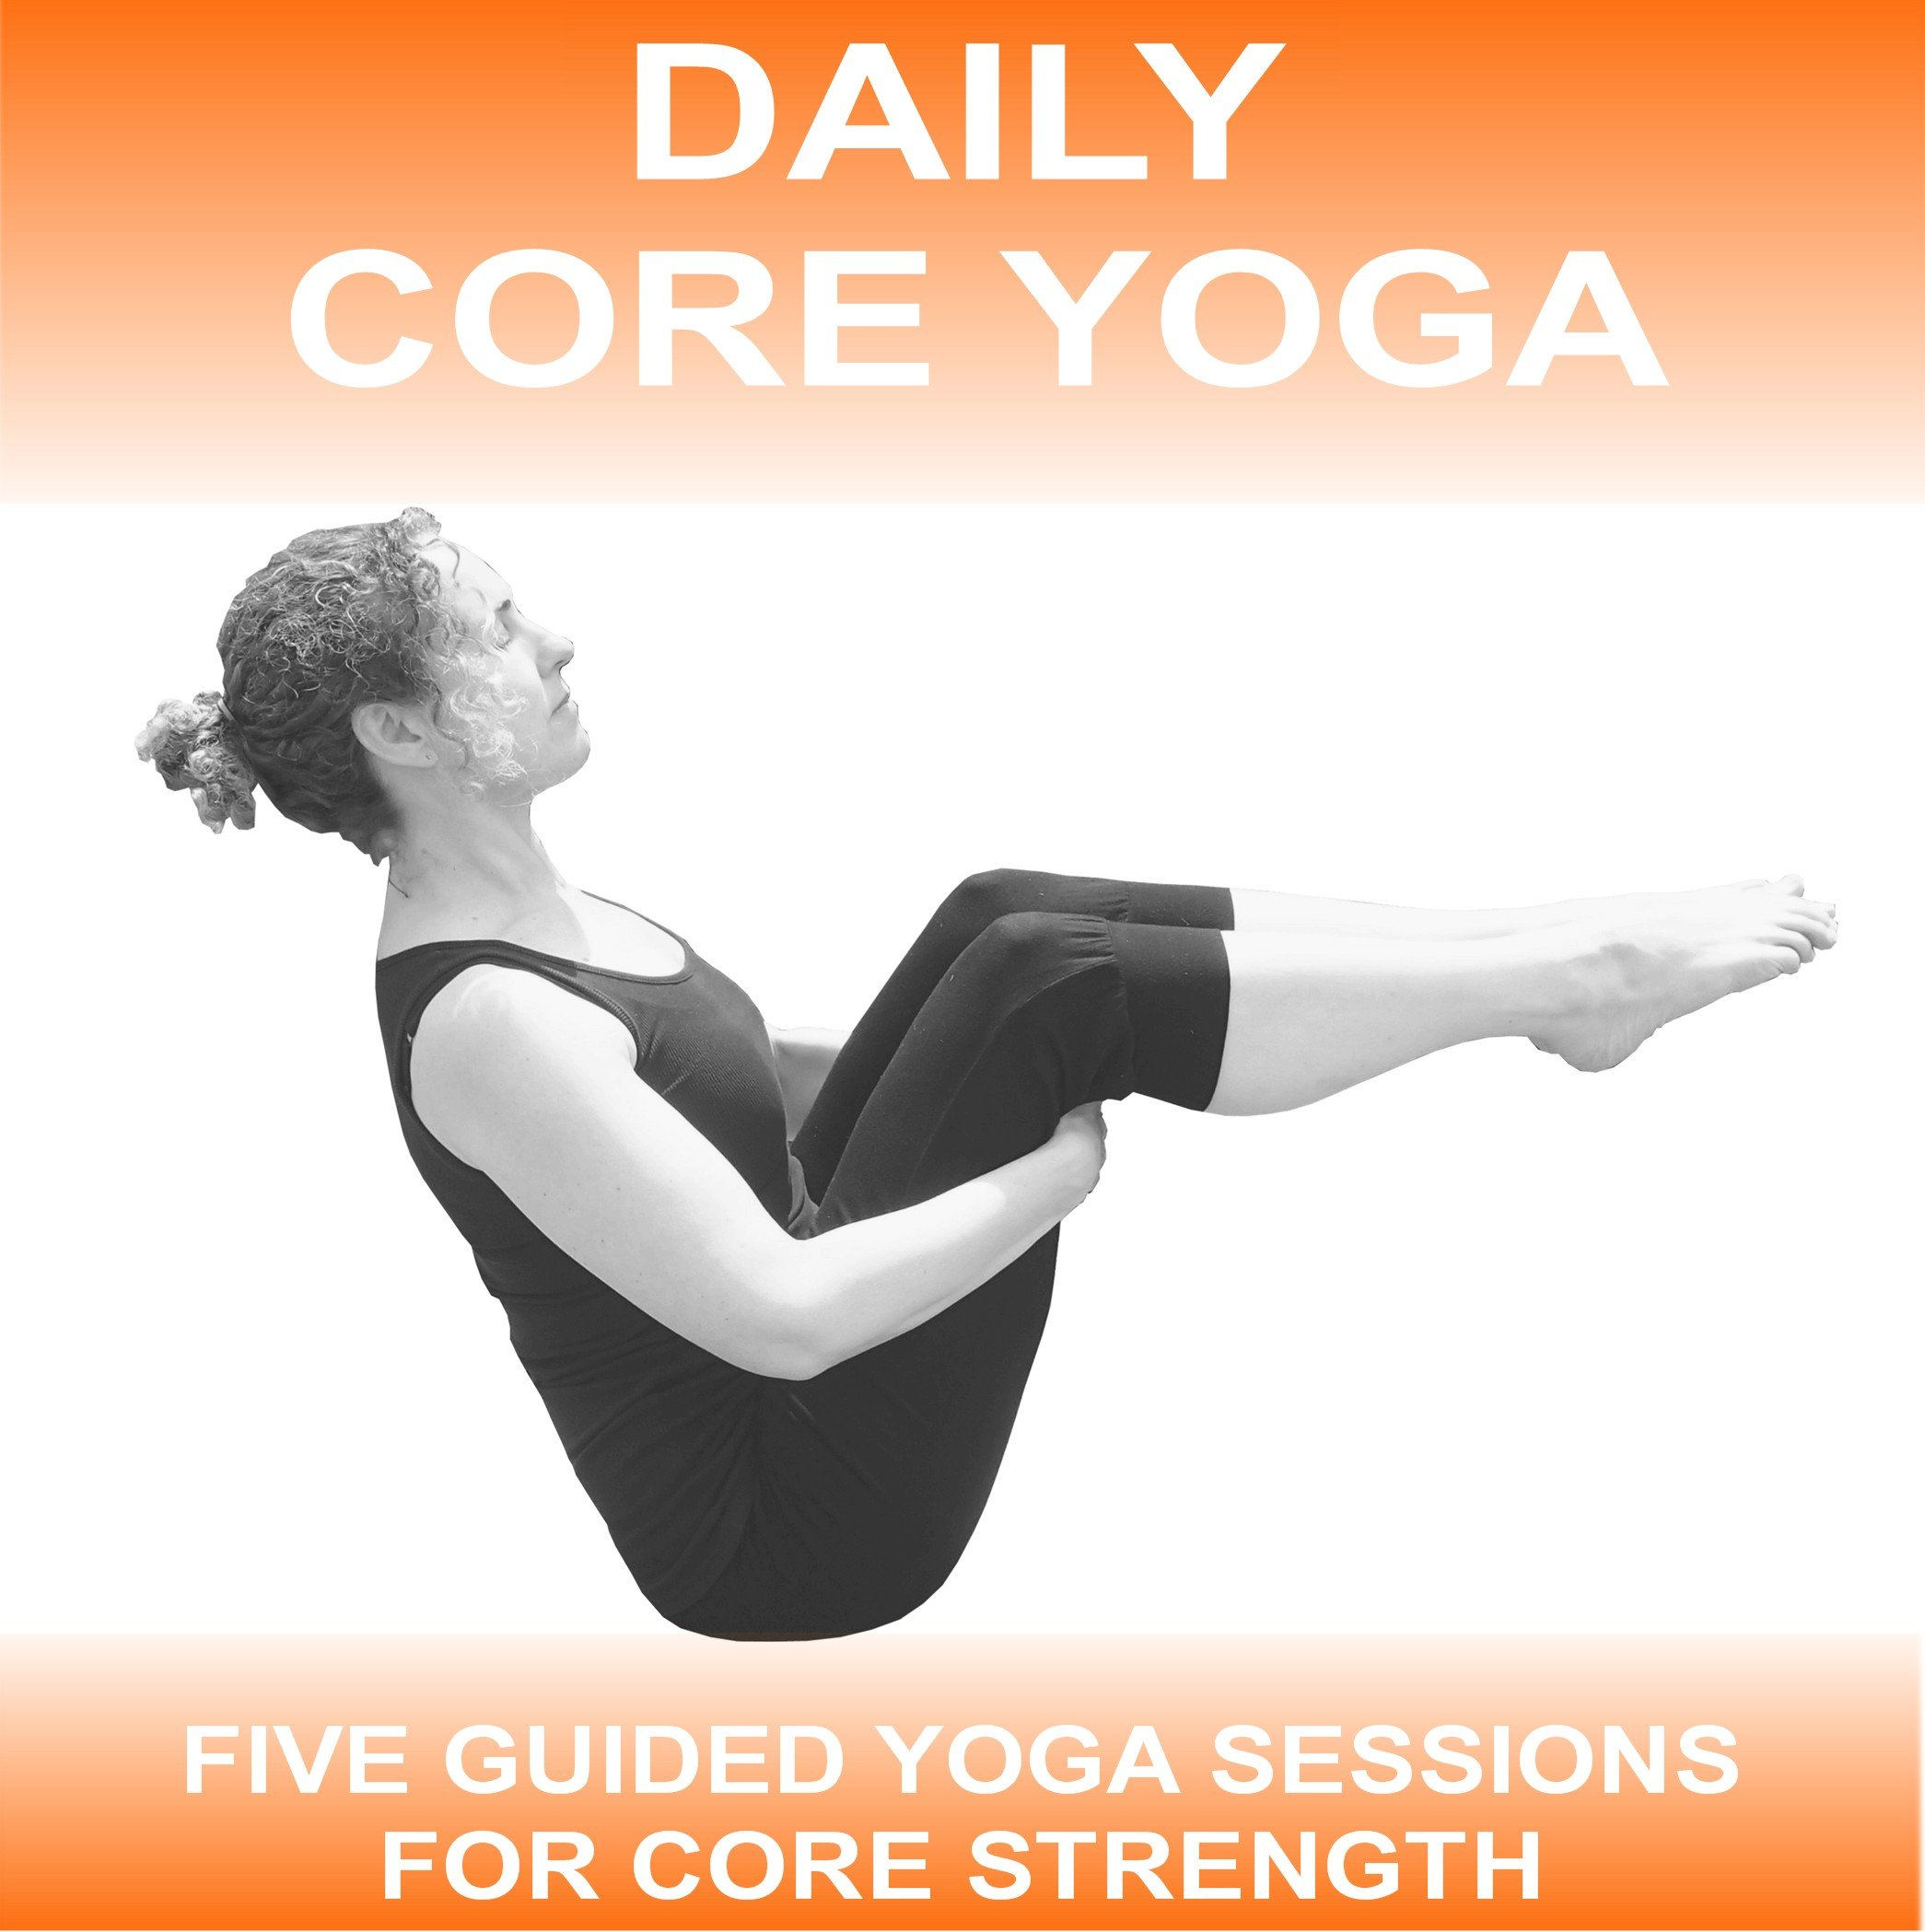 Daily Core Yoga: 5 x 15 Minute Core Yoga Sessions to Develop ...